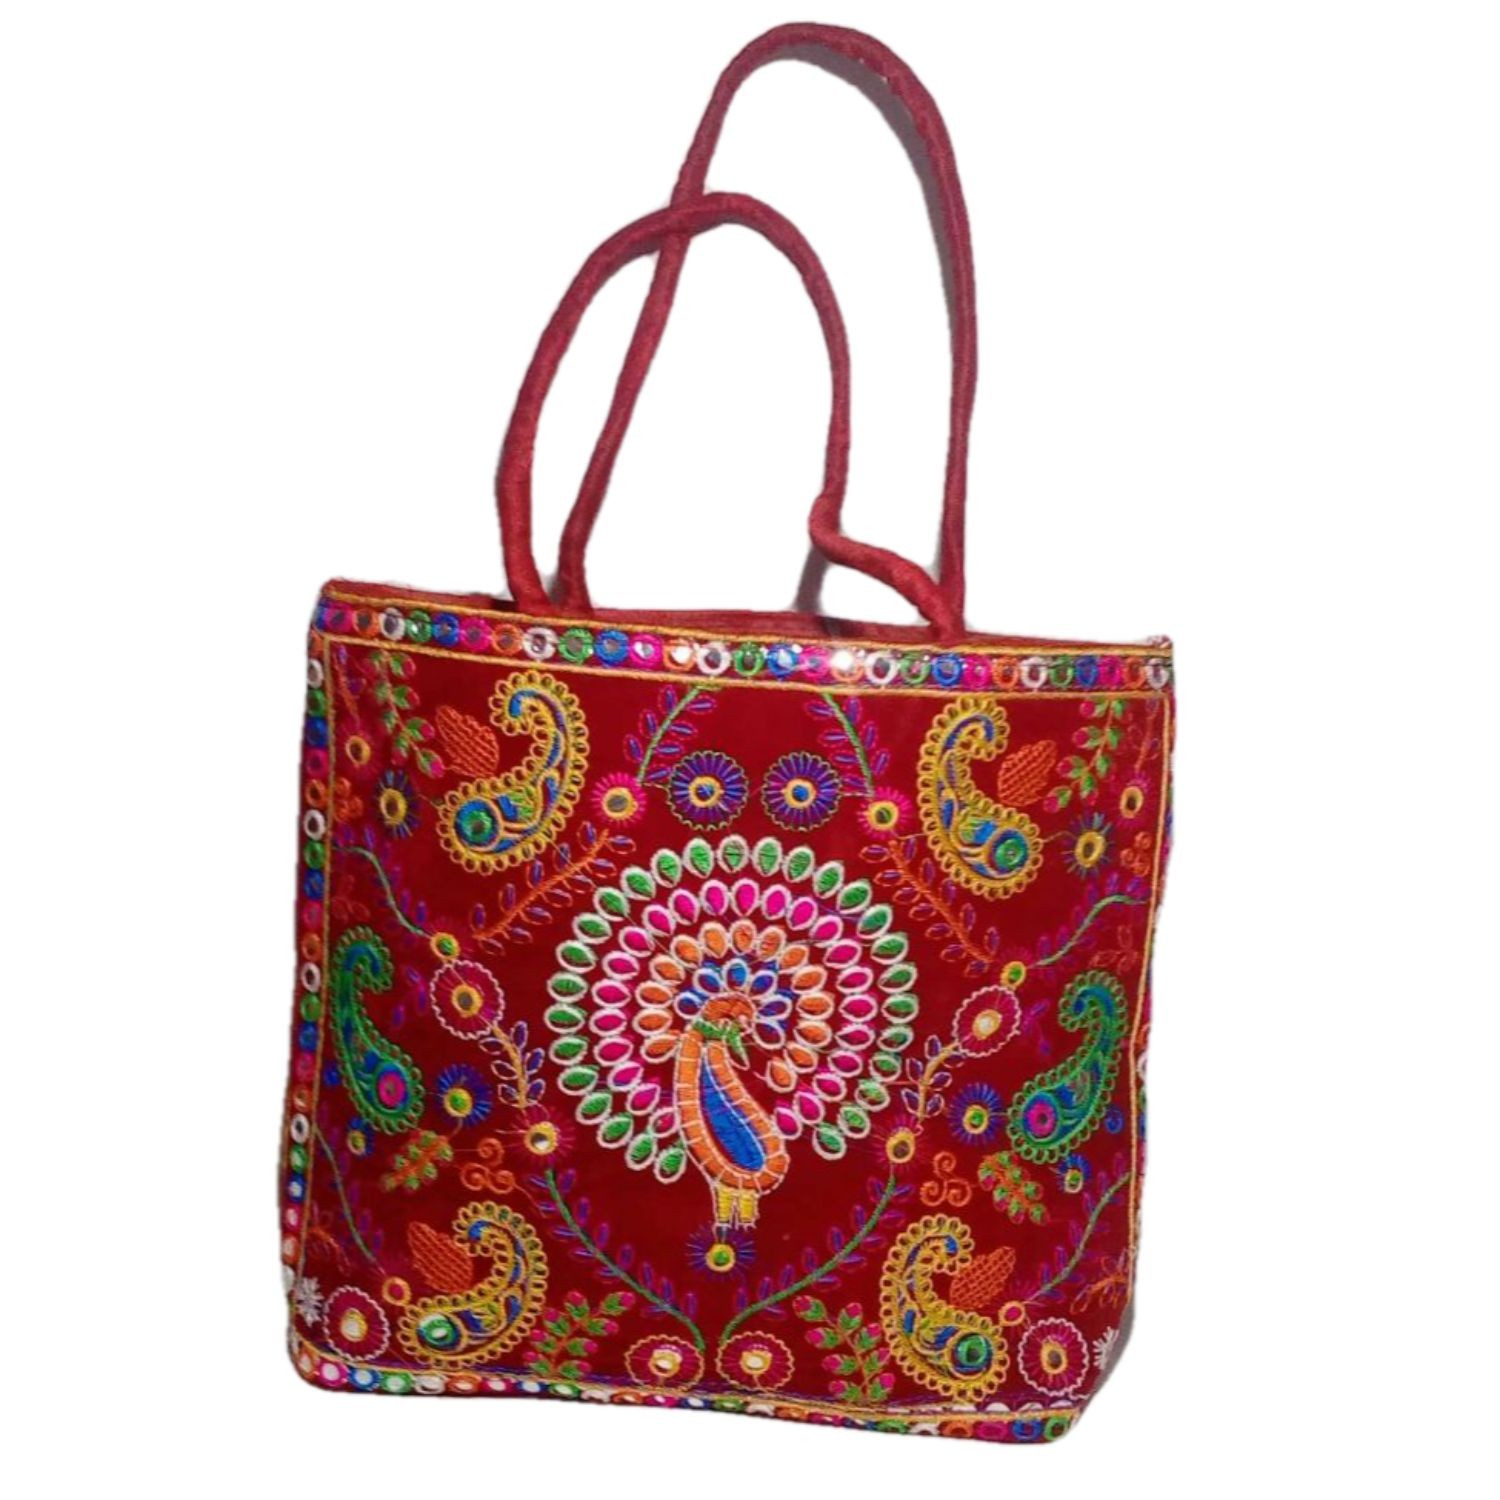 Handmade Excellent Red Genuine Shoulder Bag  with embroidery work  by Women Self Help Groups of Rajasthan